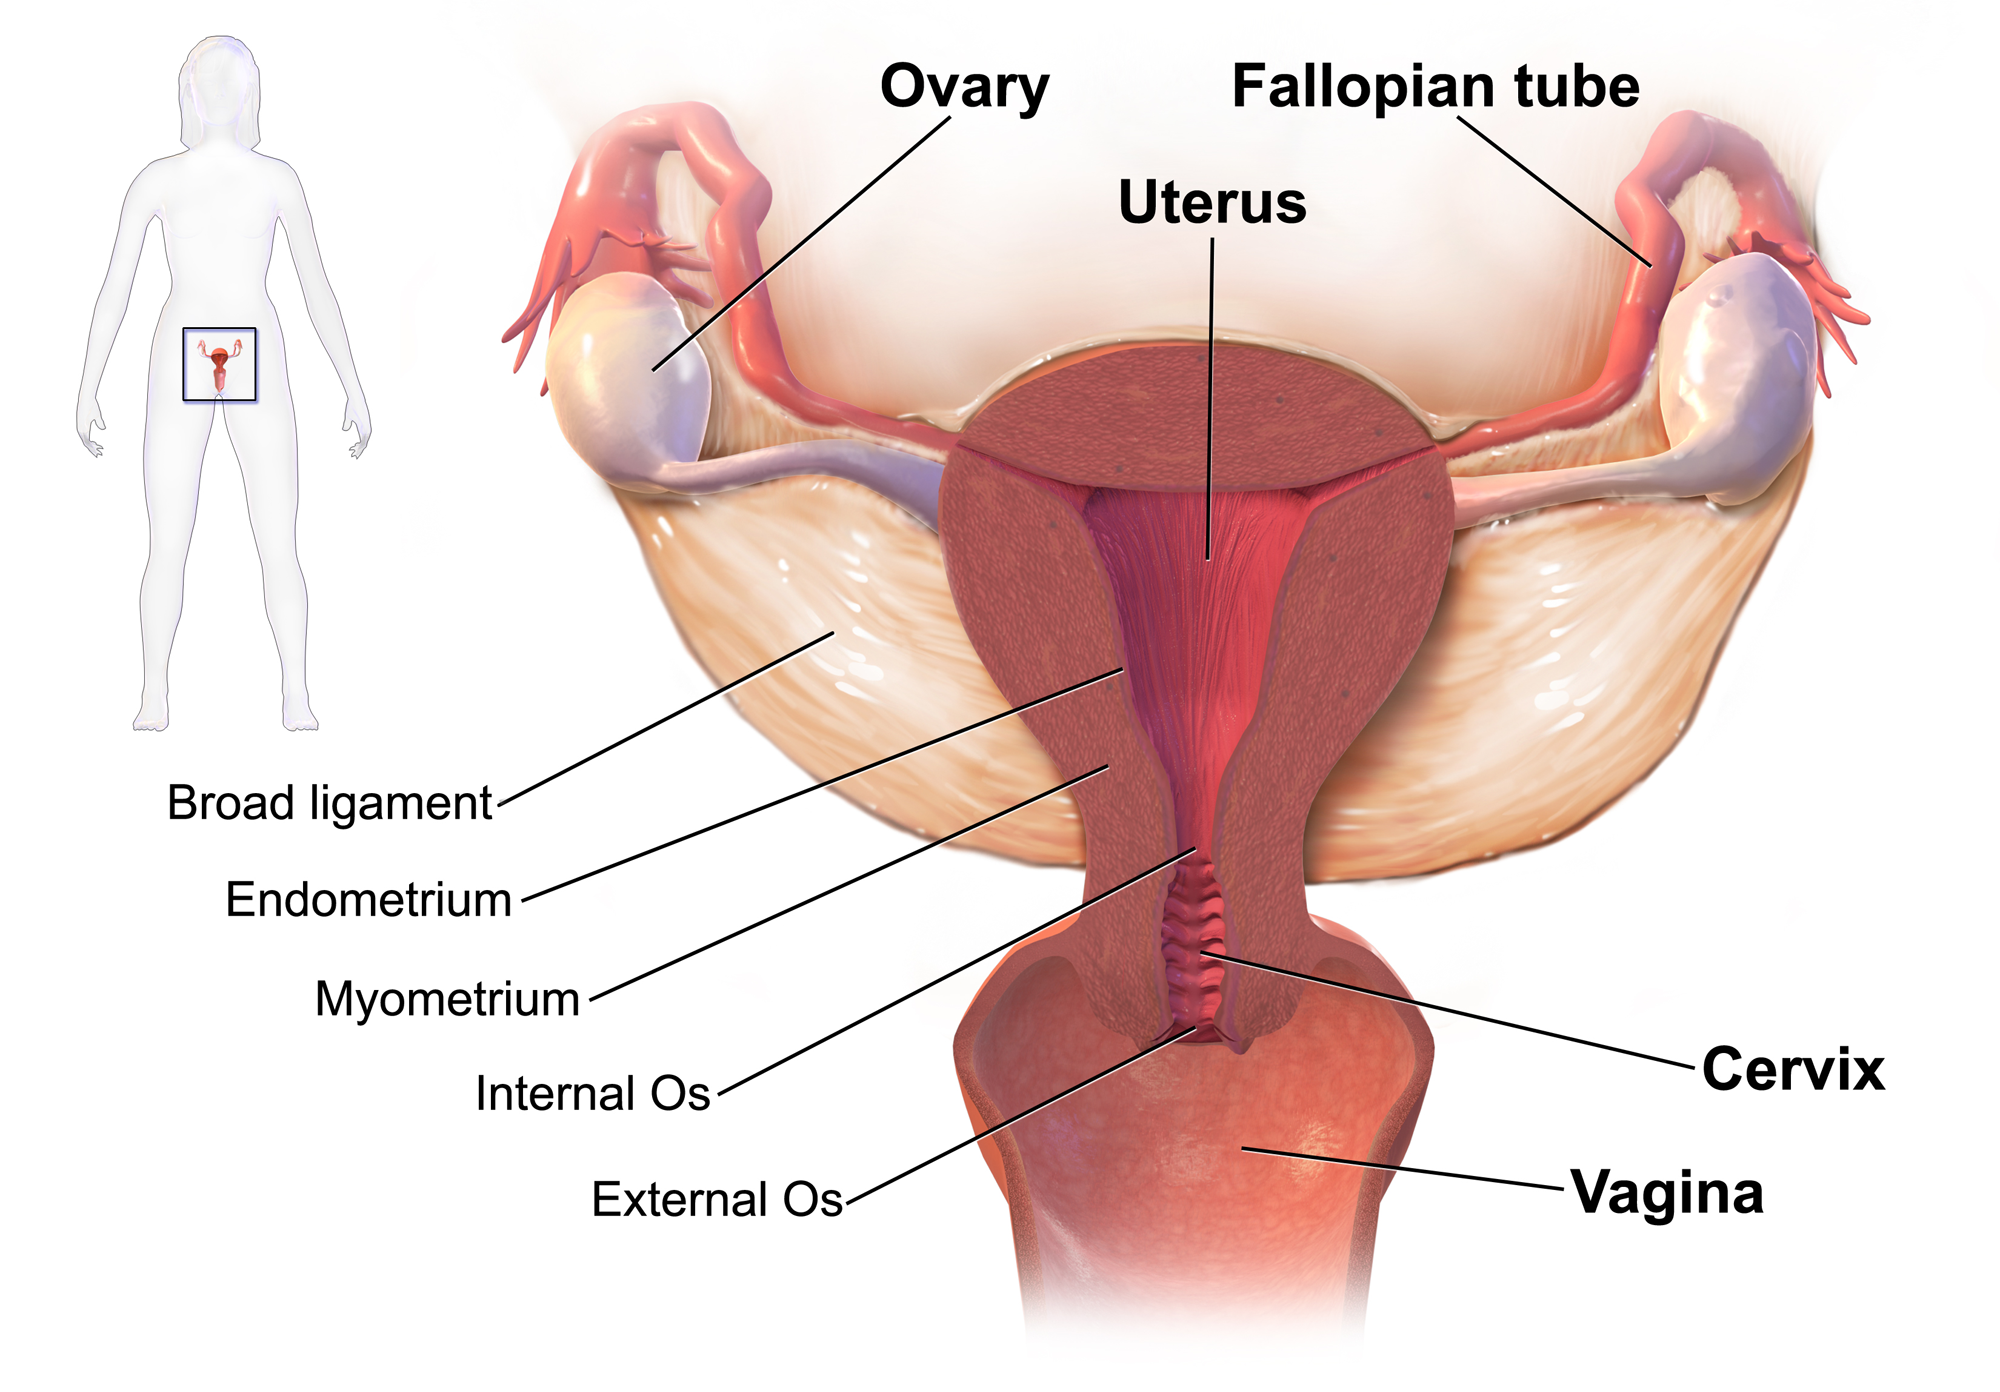 What they say about the GHA fallopian tubes